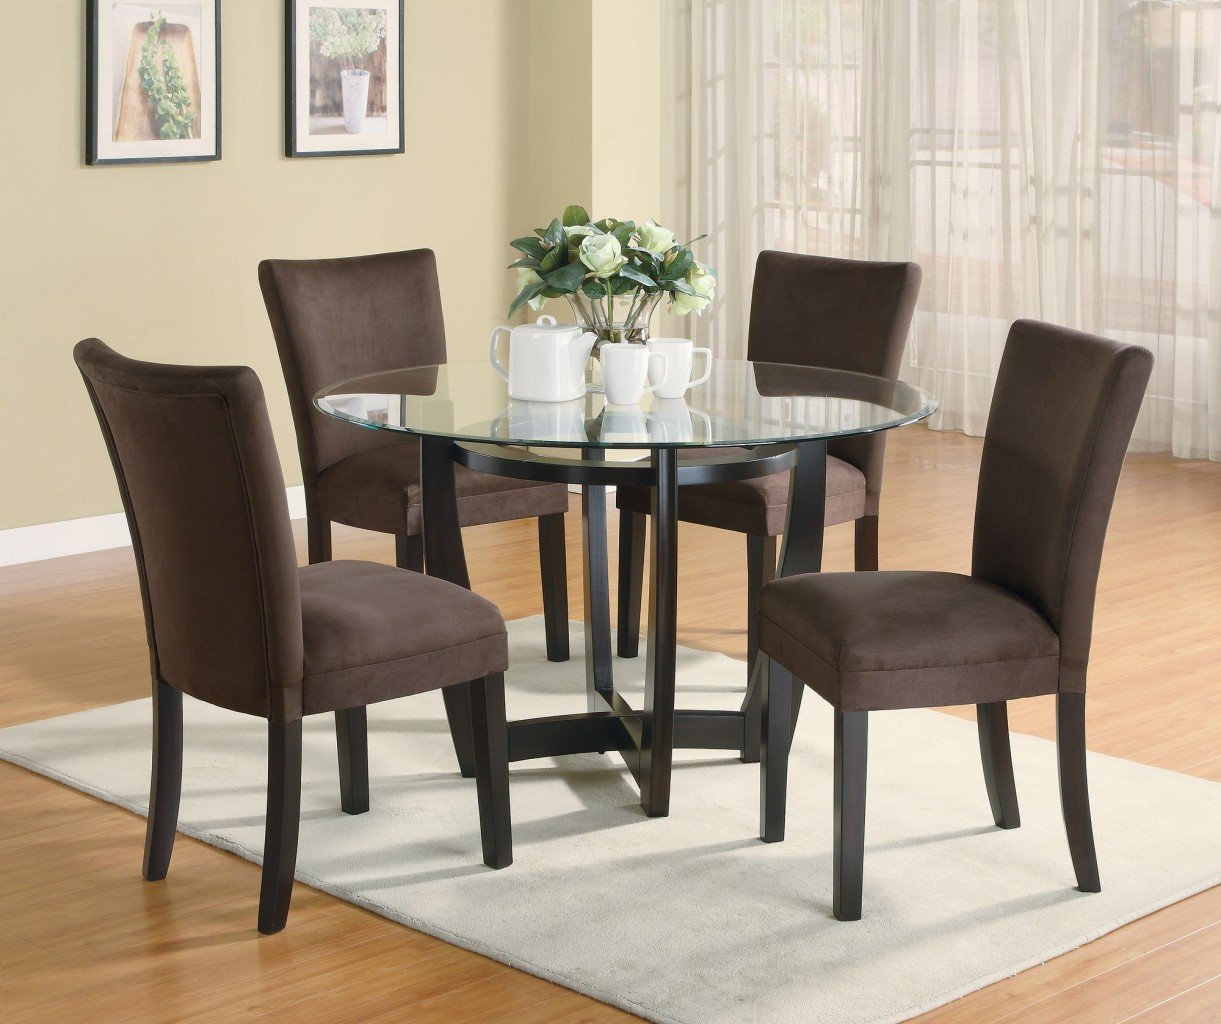 Cheap Dining Chair Sets: Cheap Dining Room Table Sets